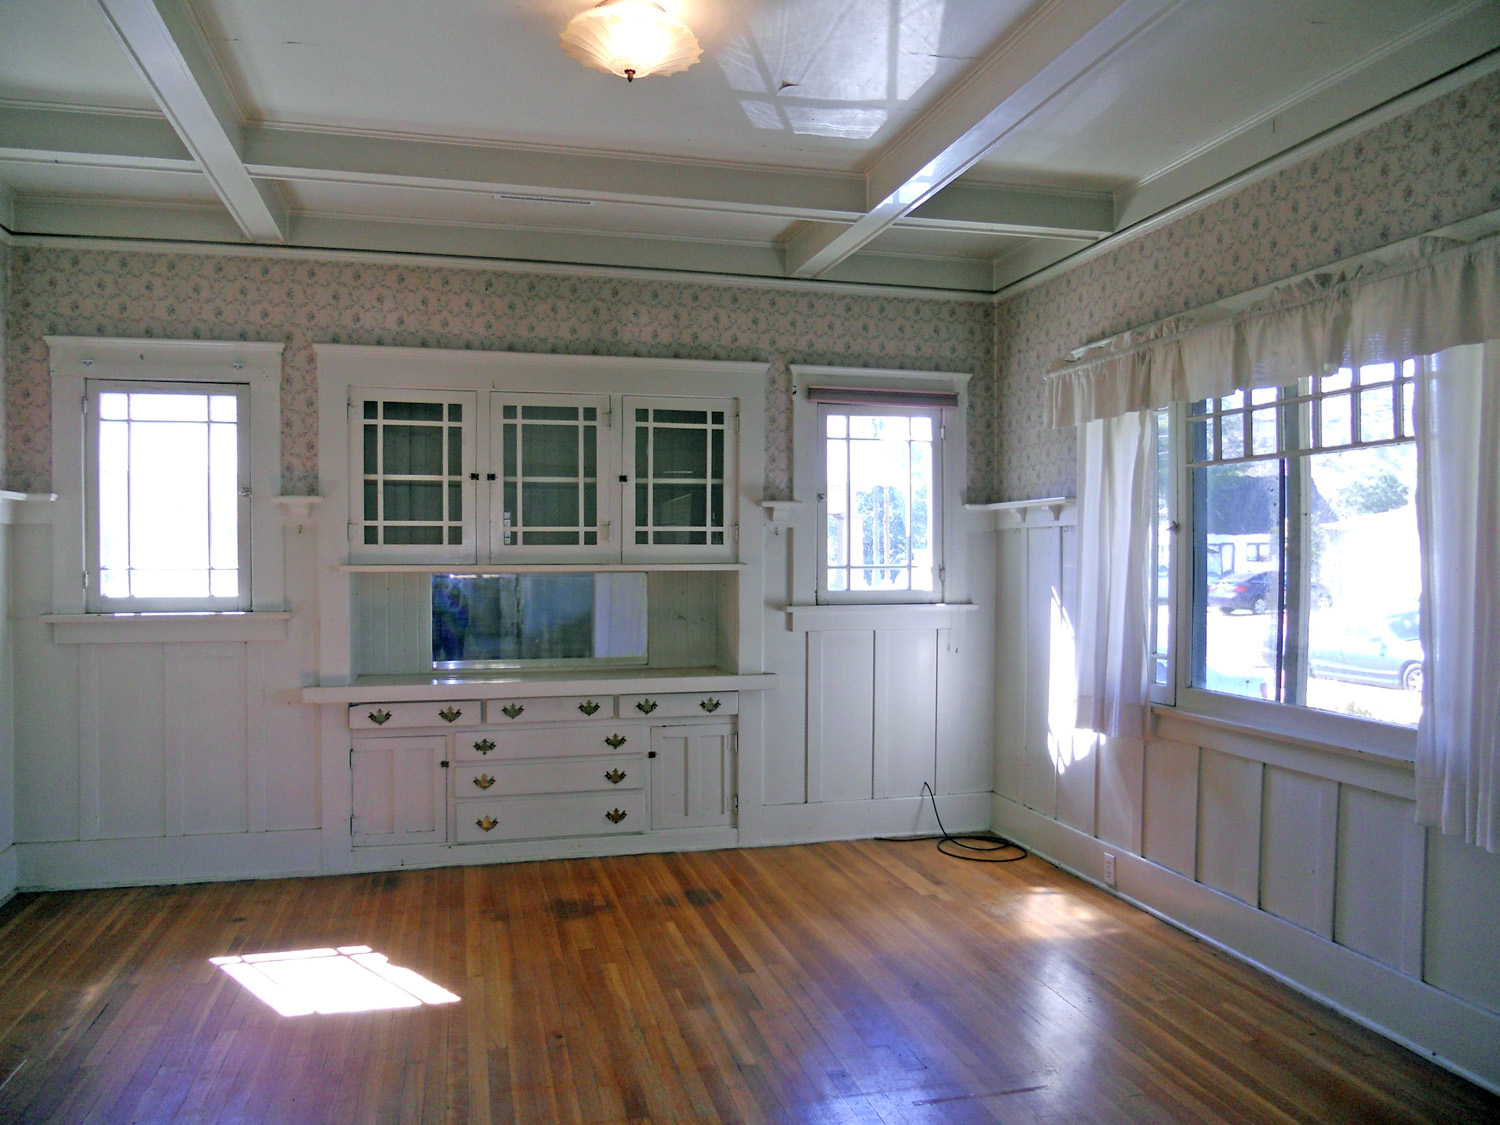 Formal dining room with built-in hutch, plate rails, original hardwood floors, and a box-beam ceiling!!!